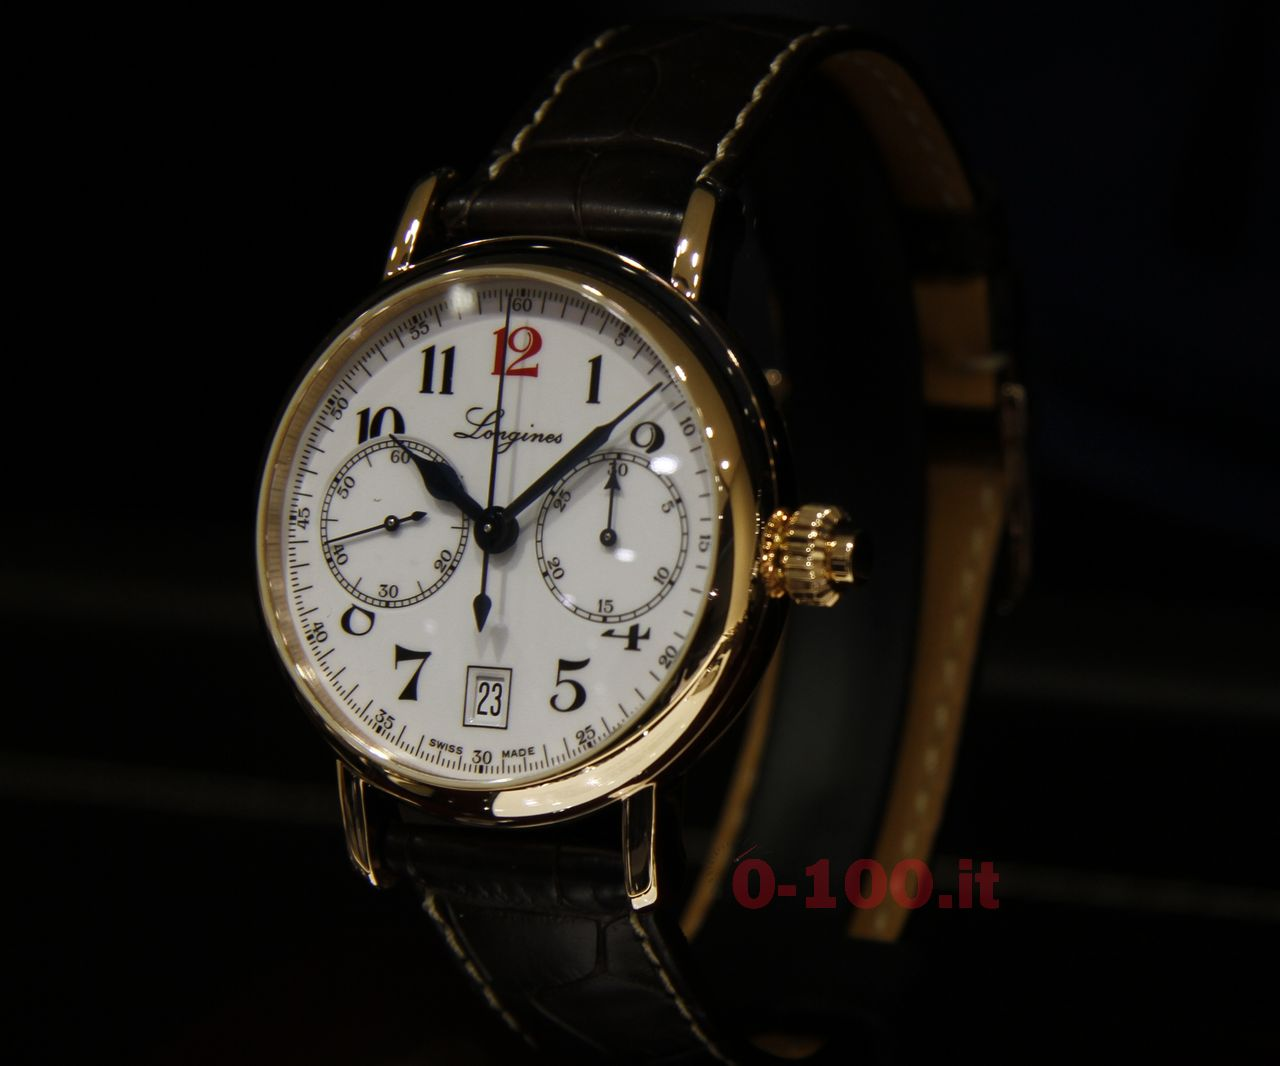 Longines Column-Wheel-Single-Push-Piece-Chronograph-0-100_10